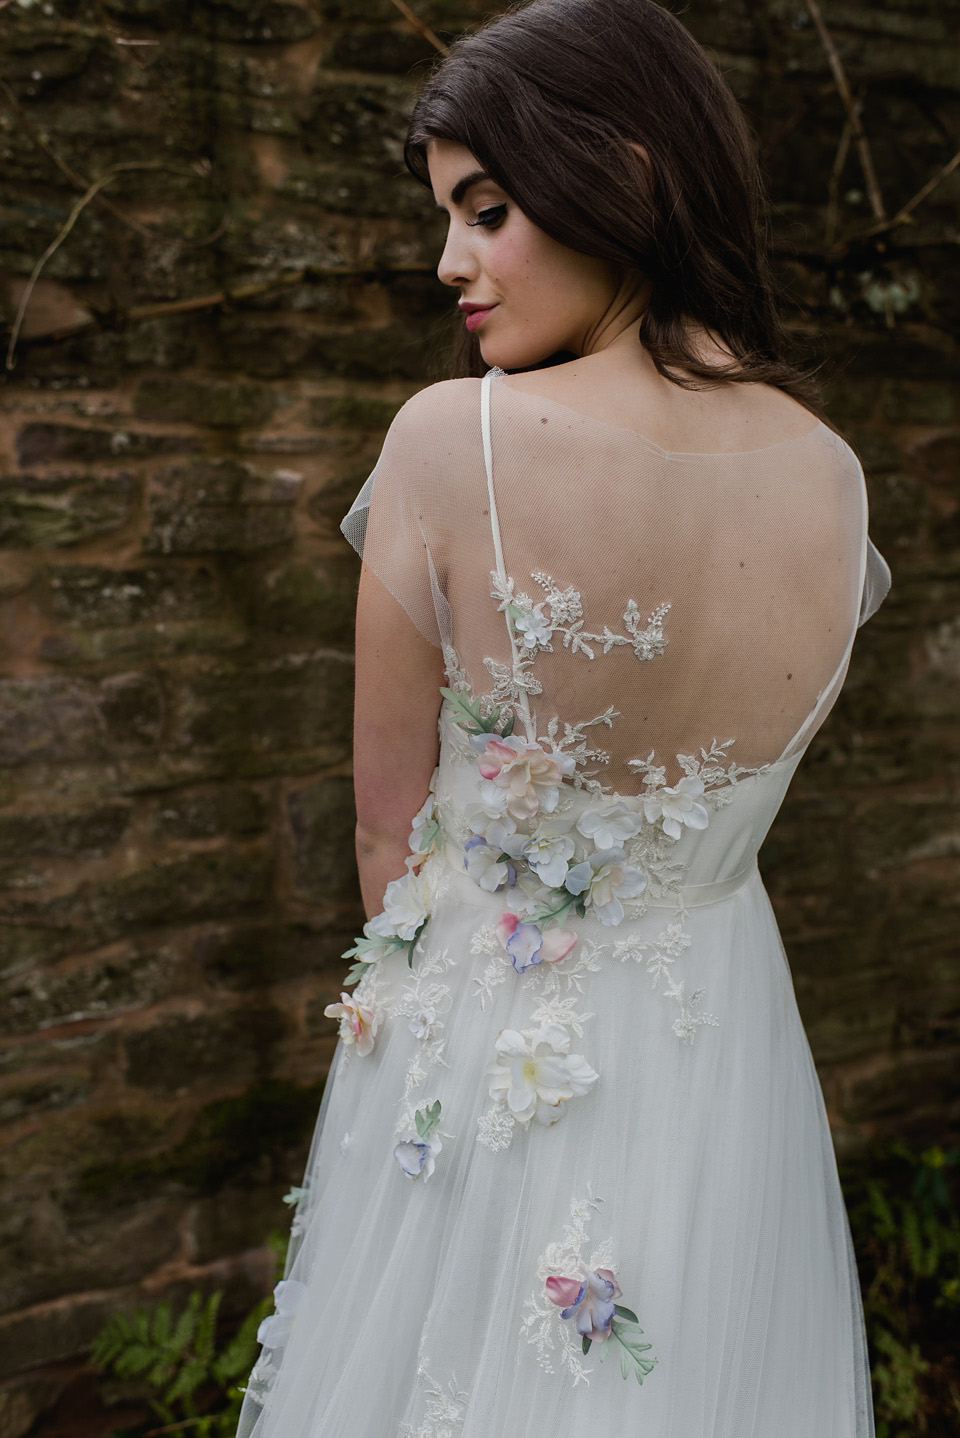 Floral wedding dresses beauteous bridal details and for Wedding dress made of flowers